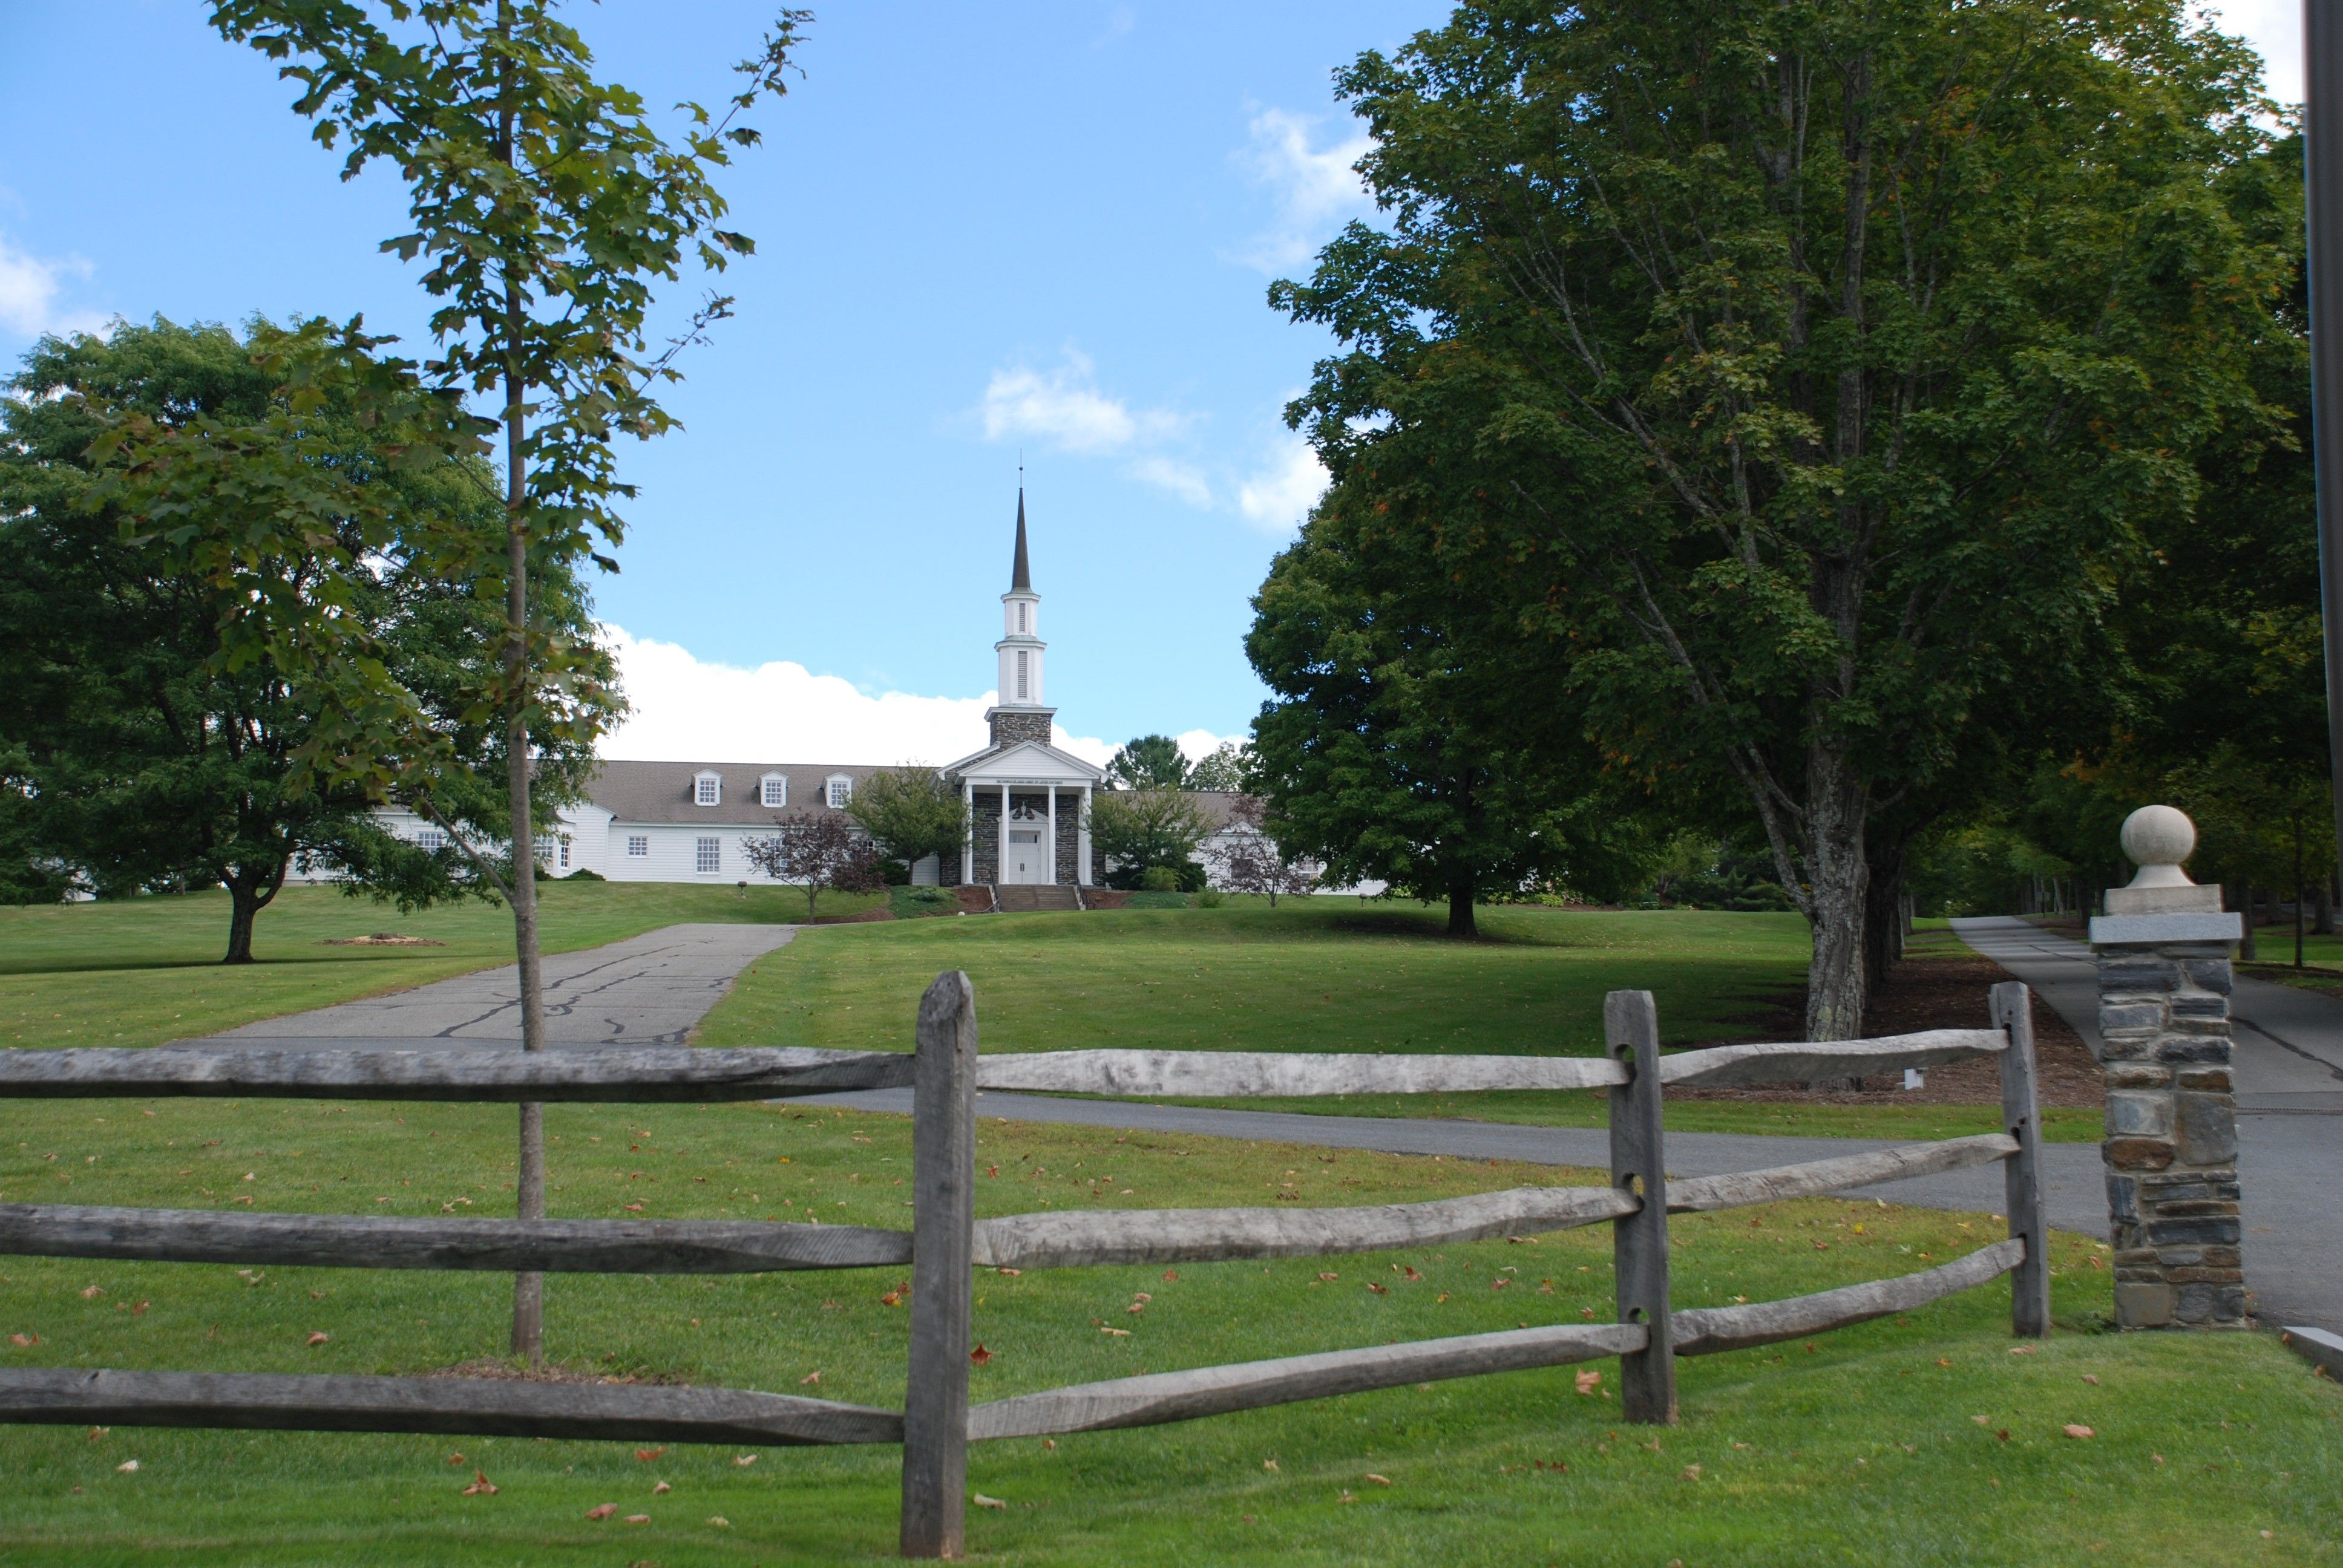 A historic meetinghouse in Sharon, Vermont, shown in the distance.